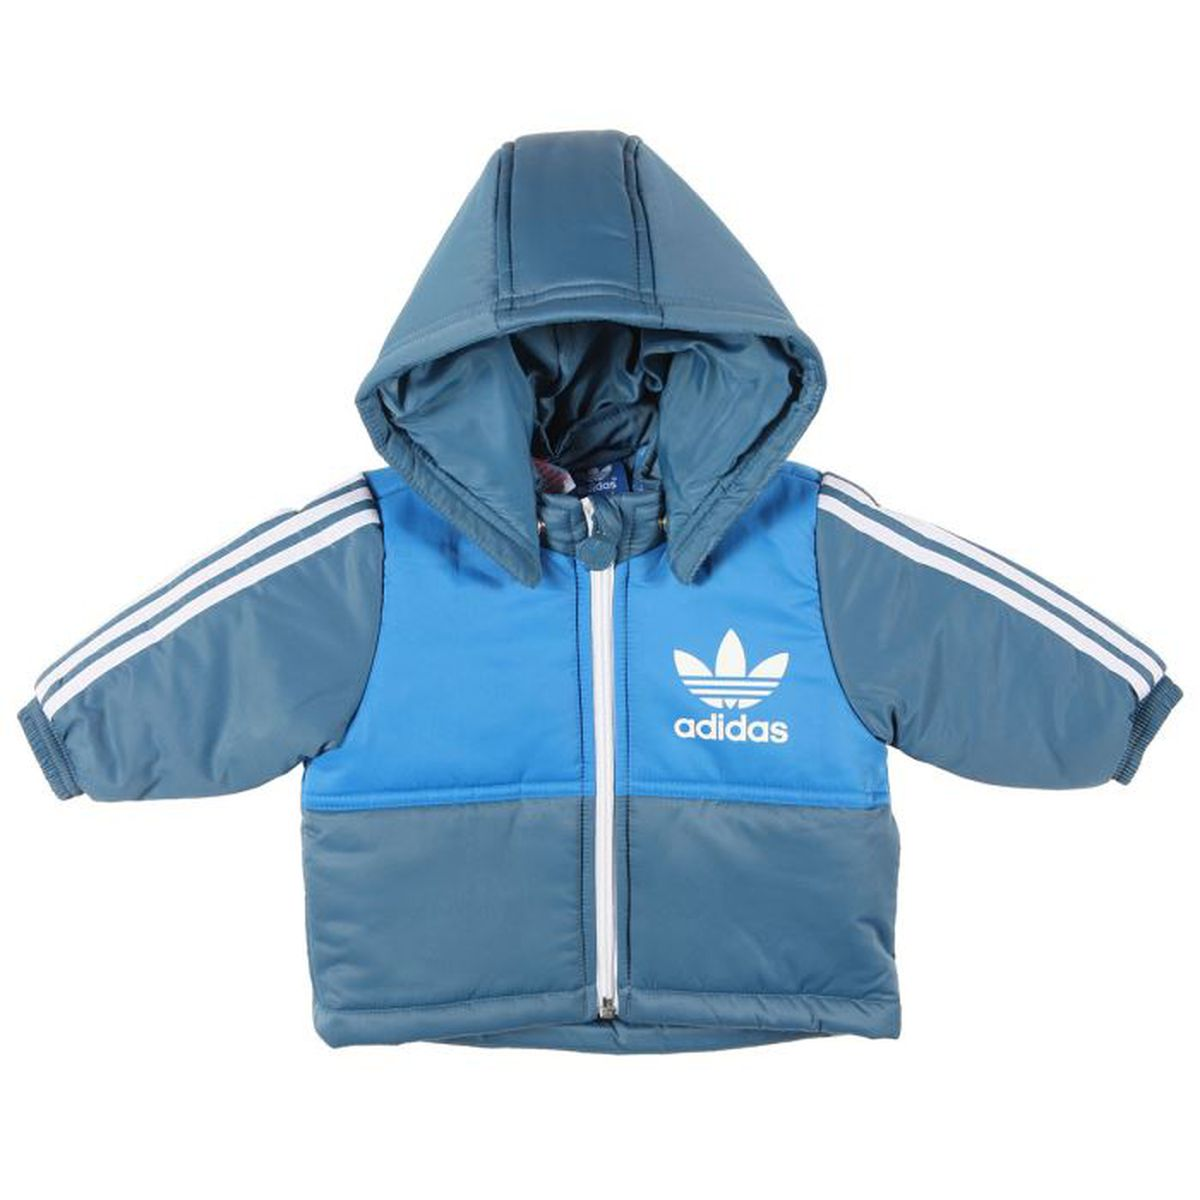 adidas originals blouson b b gar on bleu achat vente blouson soldes cdiscount. Black Bedroom Furniture Sets. Home Design Ideas